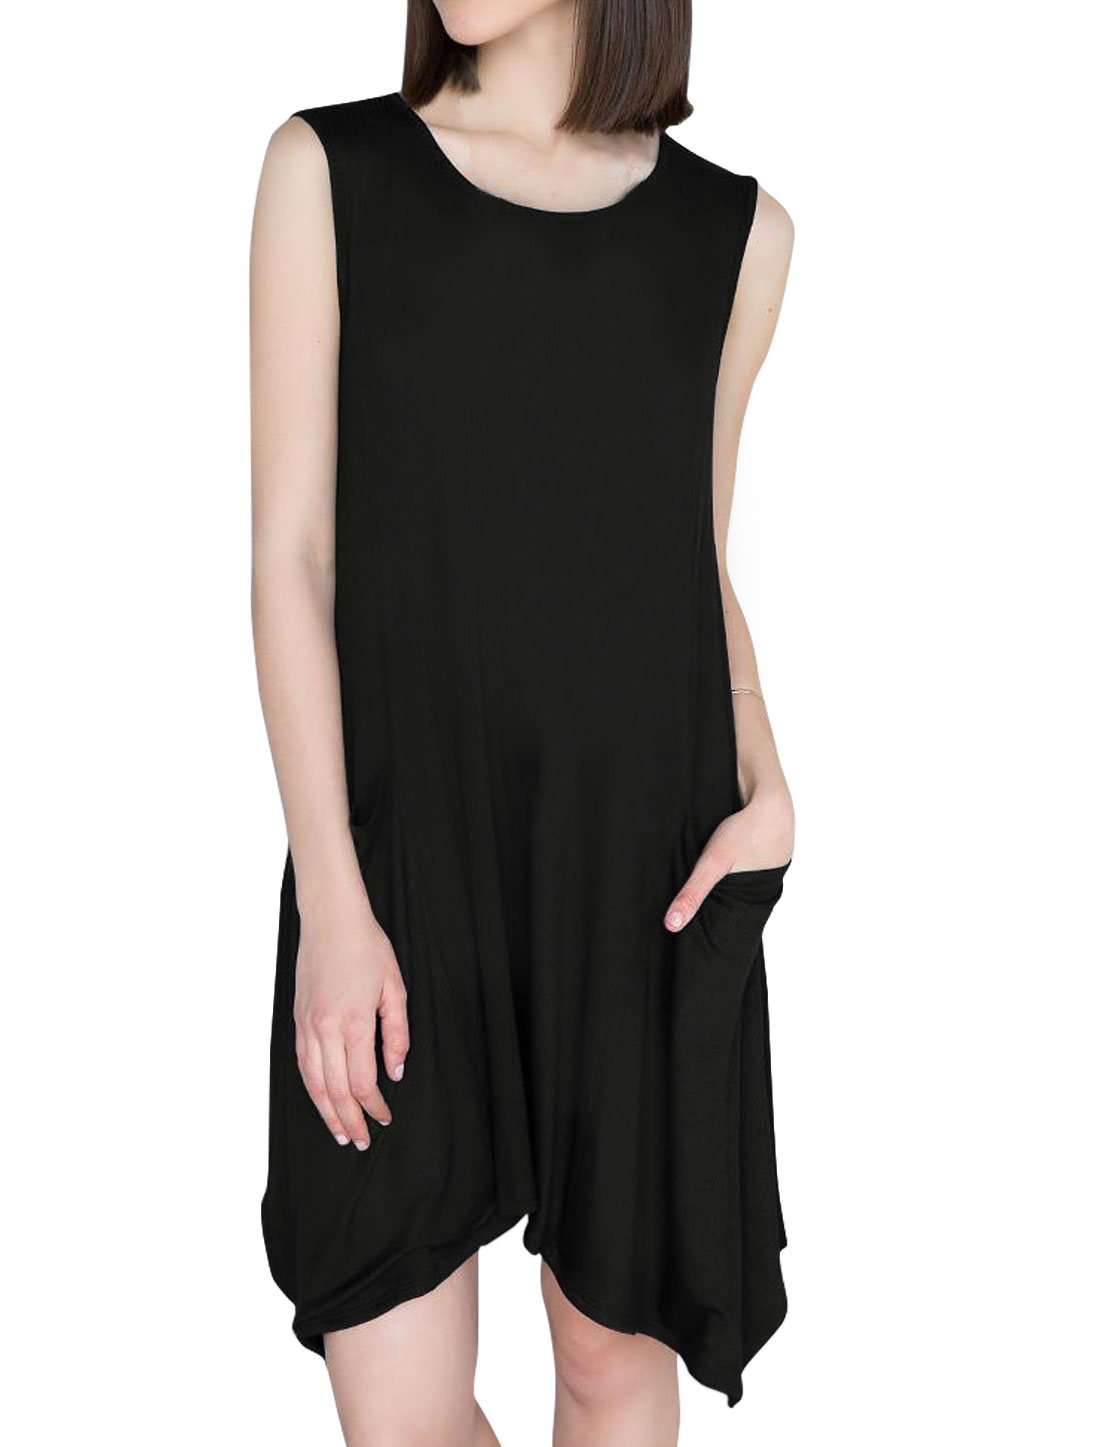 Women Sleeveless Patch Pockets Irregular Hem Tunic Dress Black M